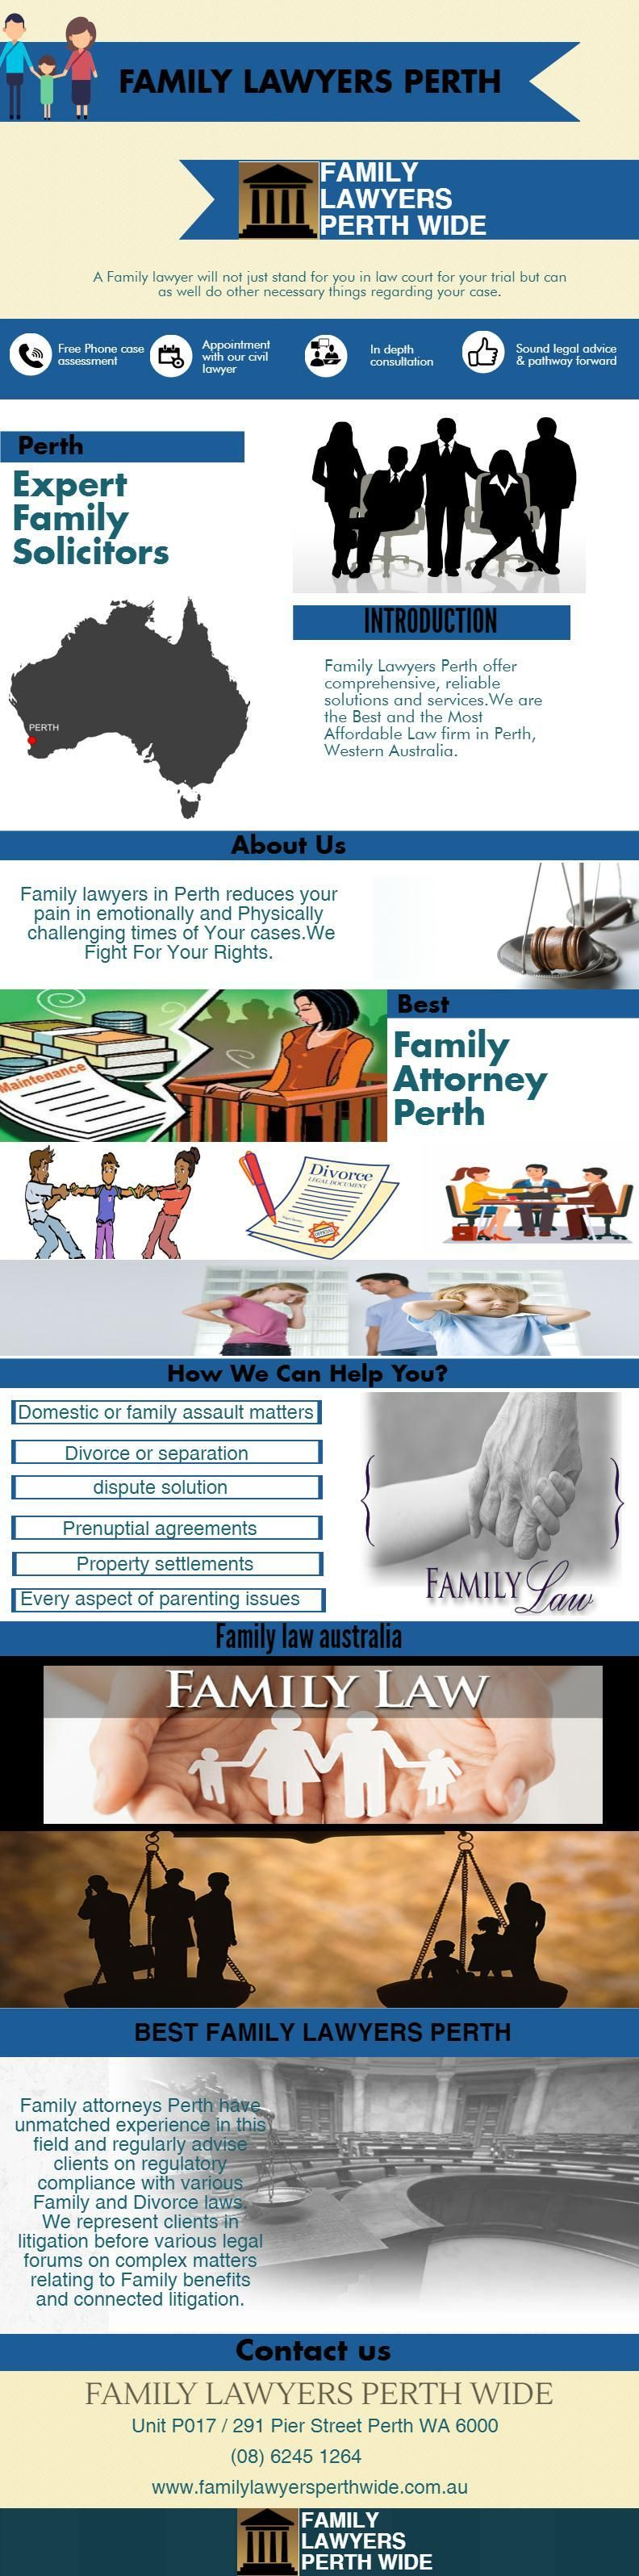 Family lawyers perth offers a complete assortment of